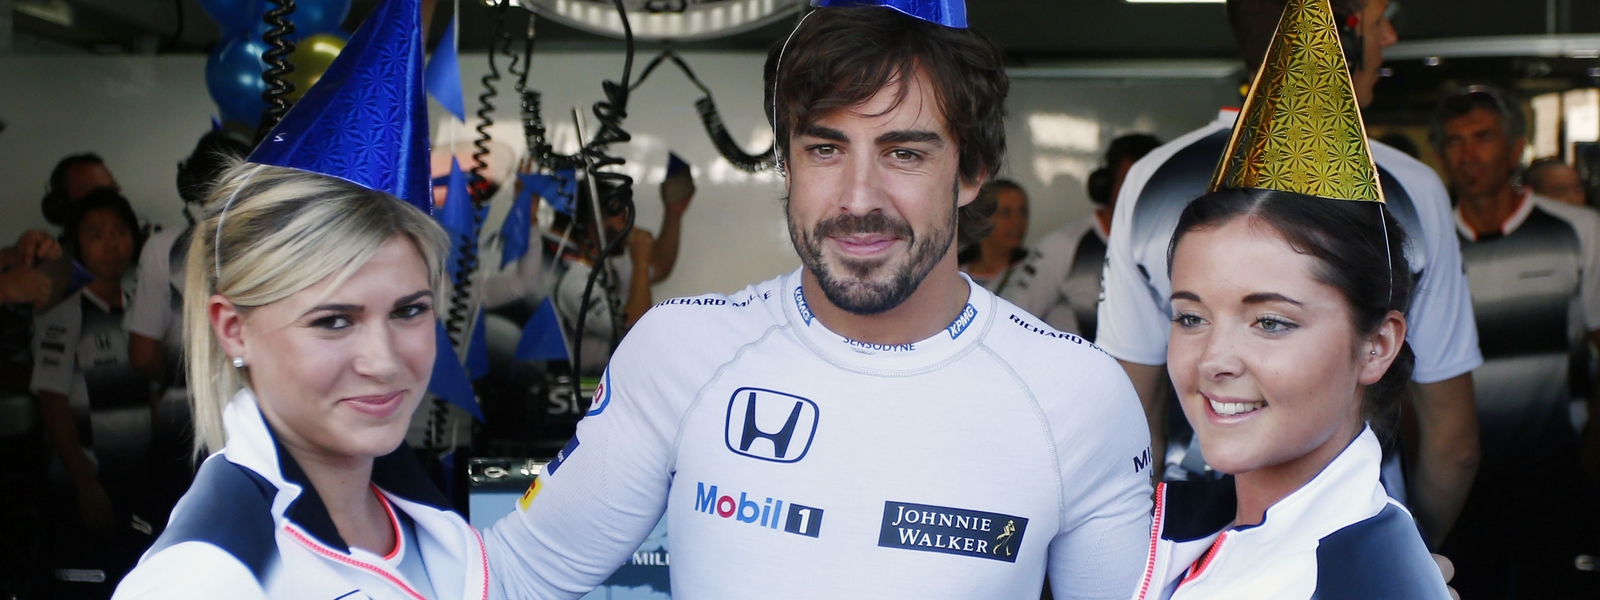 Motorsports: FIA Formula One World Championship 2016, Grand Prix of Germany,  #14 Fernando Alonso (ESP, McLaren Honda Formula 1 Team),  *** Local Caption *** +++ www.hoch-zwei.net +++ copyright: HOCH ZWEI +++